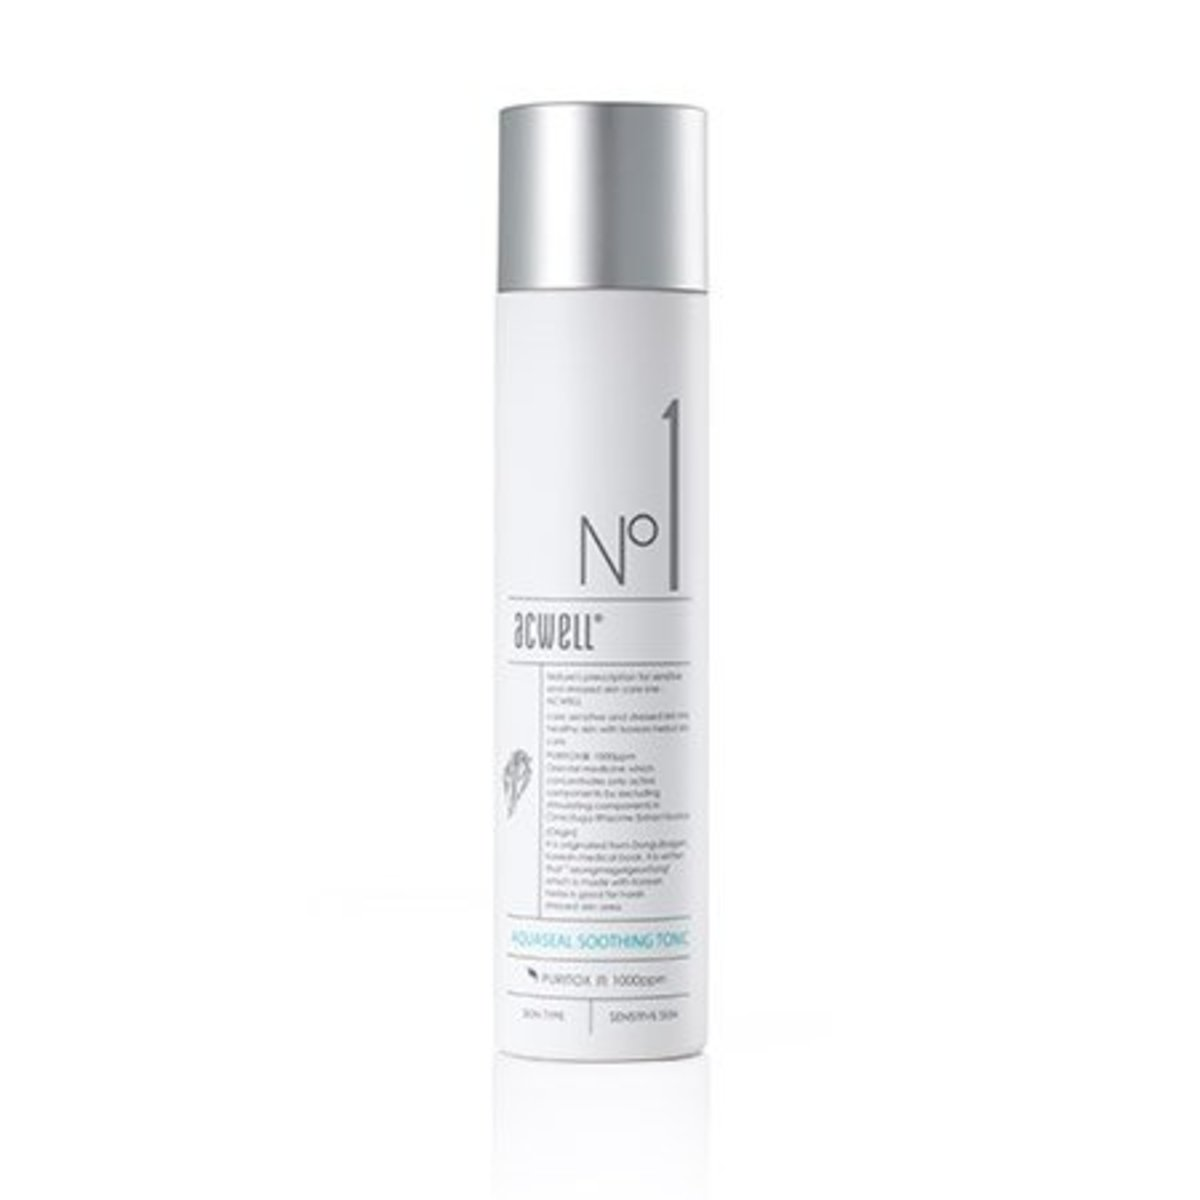 Authorised Goods - ACWELL NO1 AQUASEAL SOOTHING TONIC - 艾珂薇 NO1 深層極緻保濕舒緩爽膚水